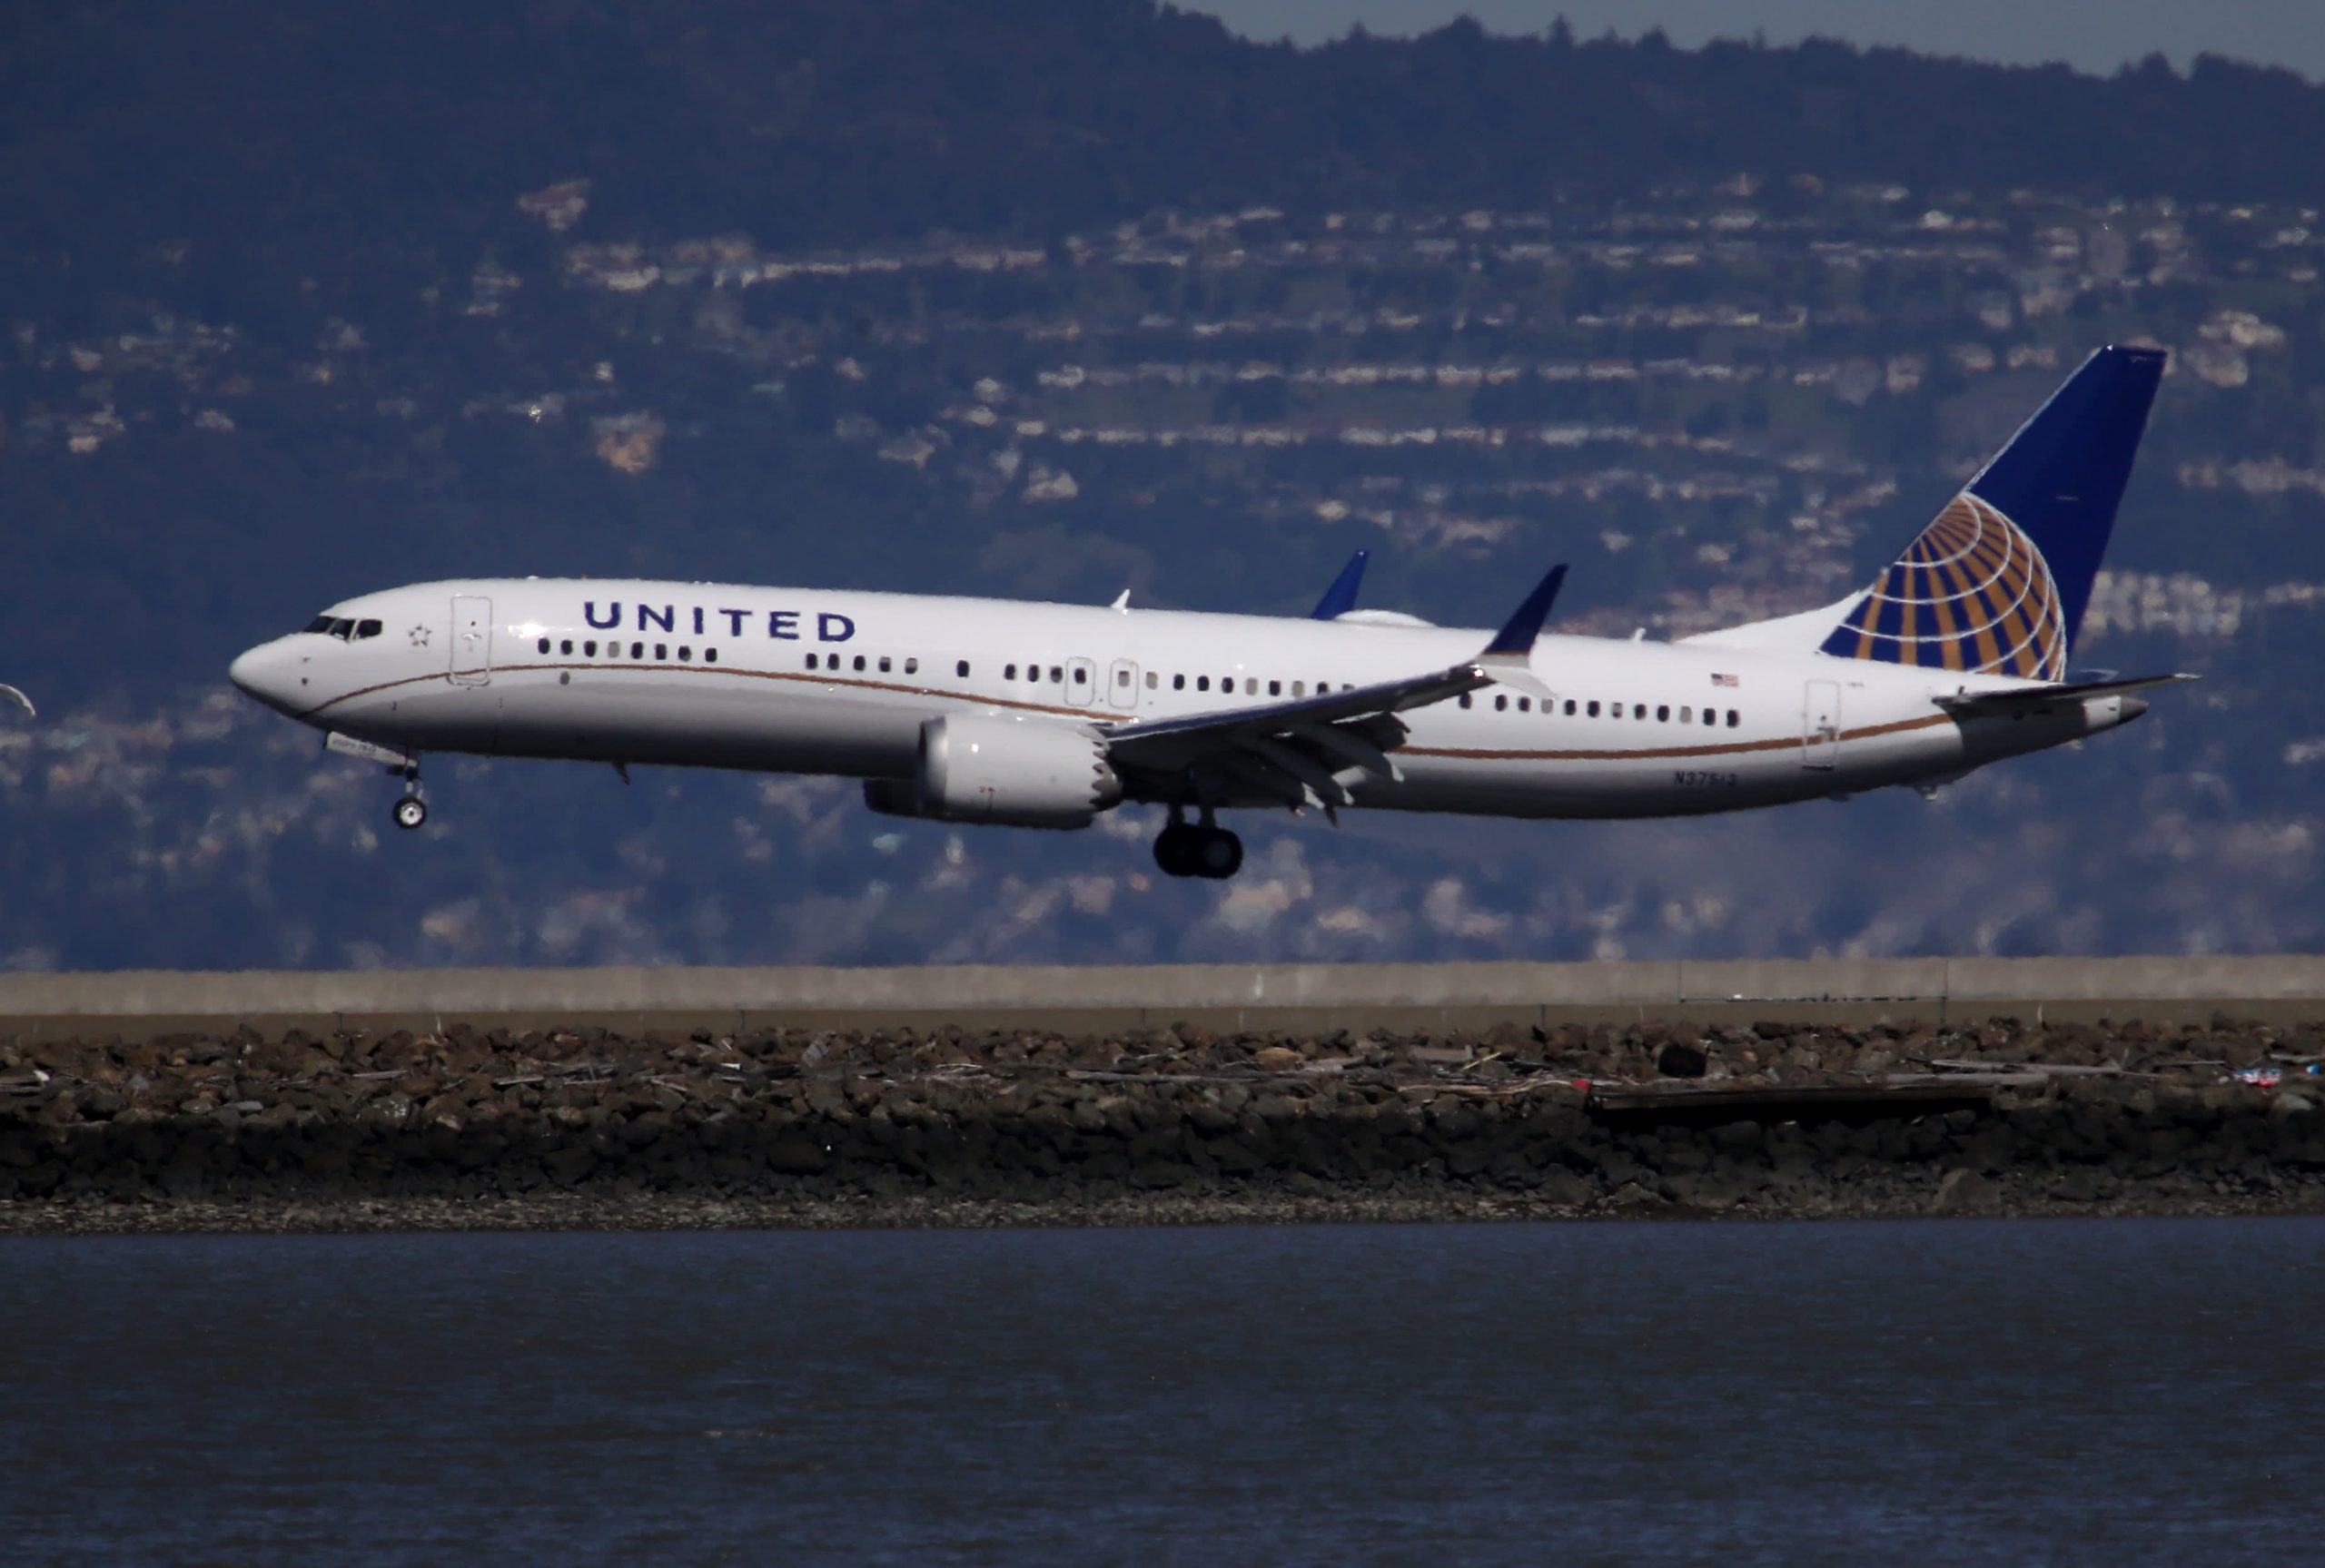 United Airlines (UAL) 2Q 21 narrows losses